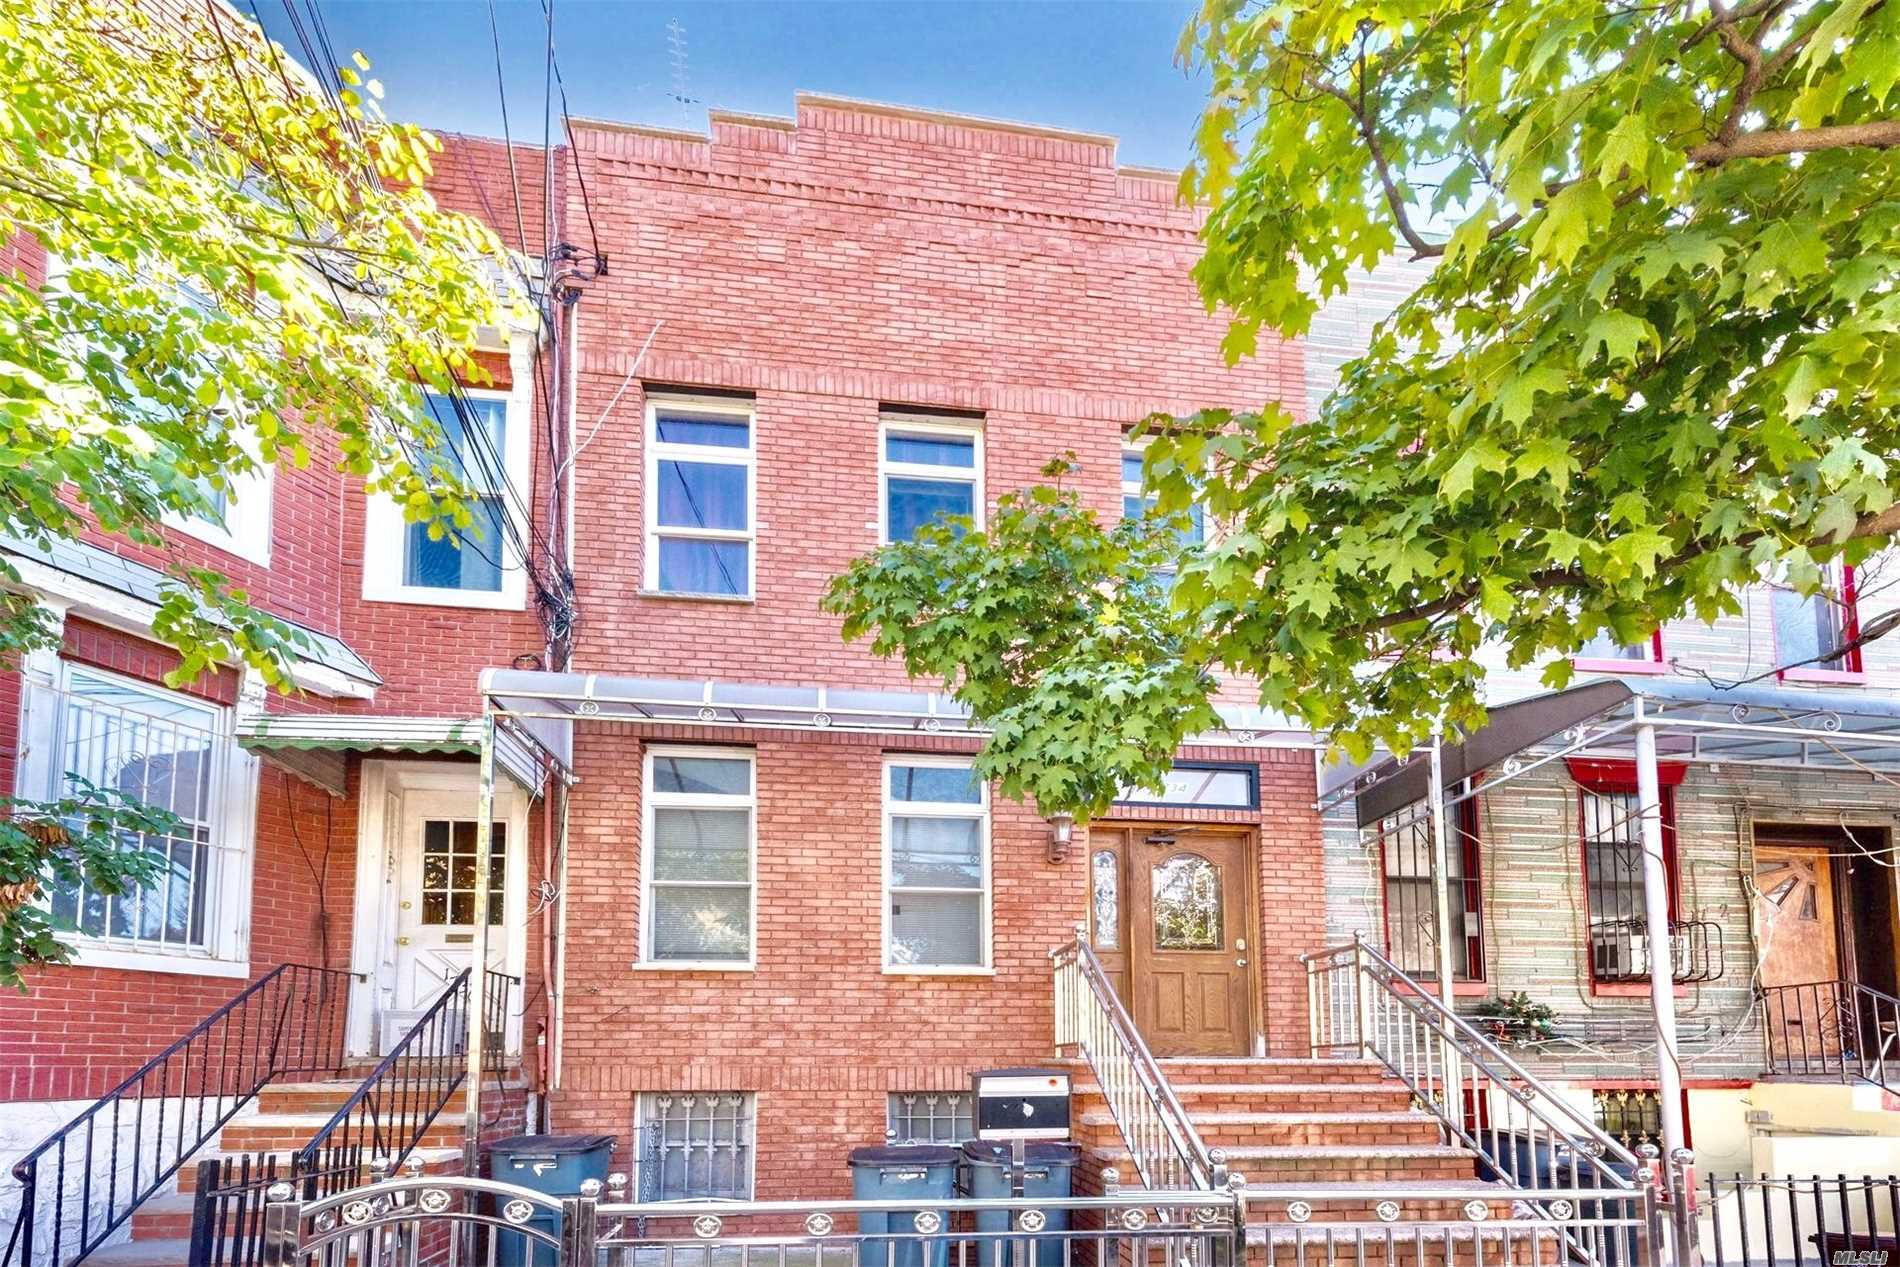 Two Family House In The Exclusive Area Of Ridgewood Near All Transportation, Close To Subway L Train Supermarkets. This Home Boast Seven Bedrooms, Living Room, Formal Dining Rm, & Five Bath's, Hardwood Floors, Throughout The Home, Finished Basement, Central A/C The House Has Been Totally Renovated !